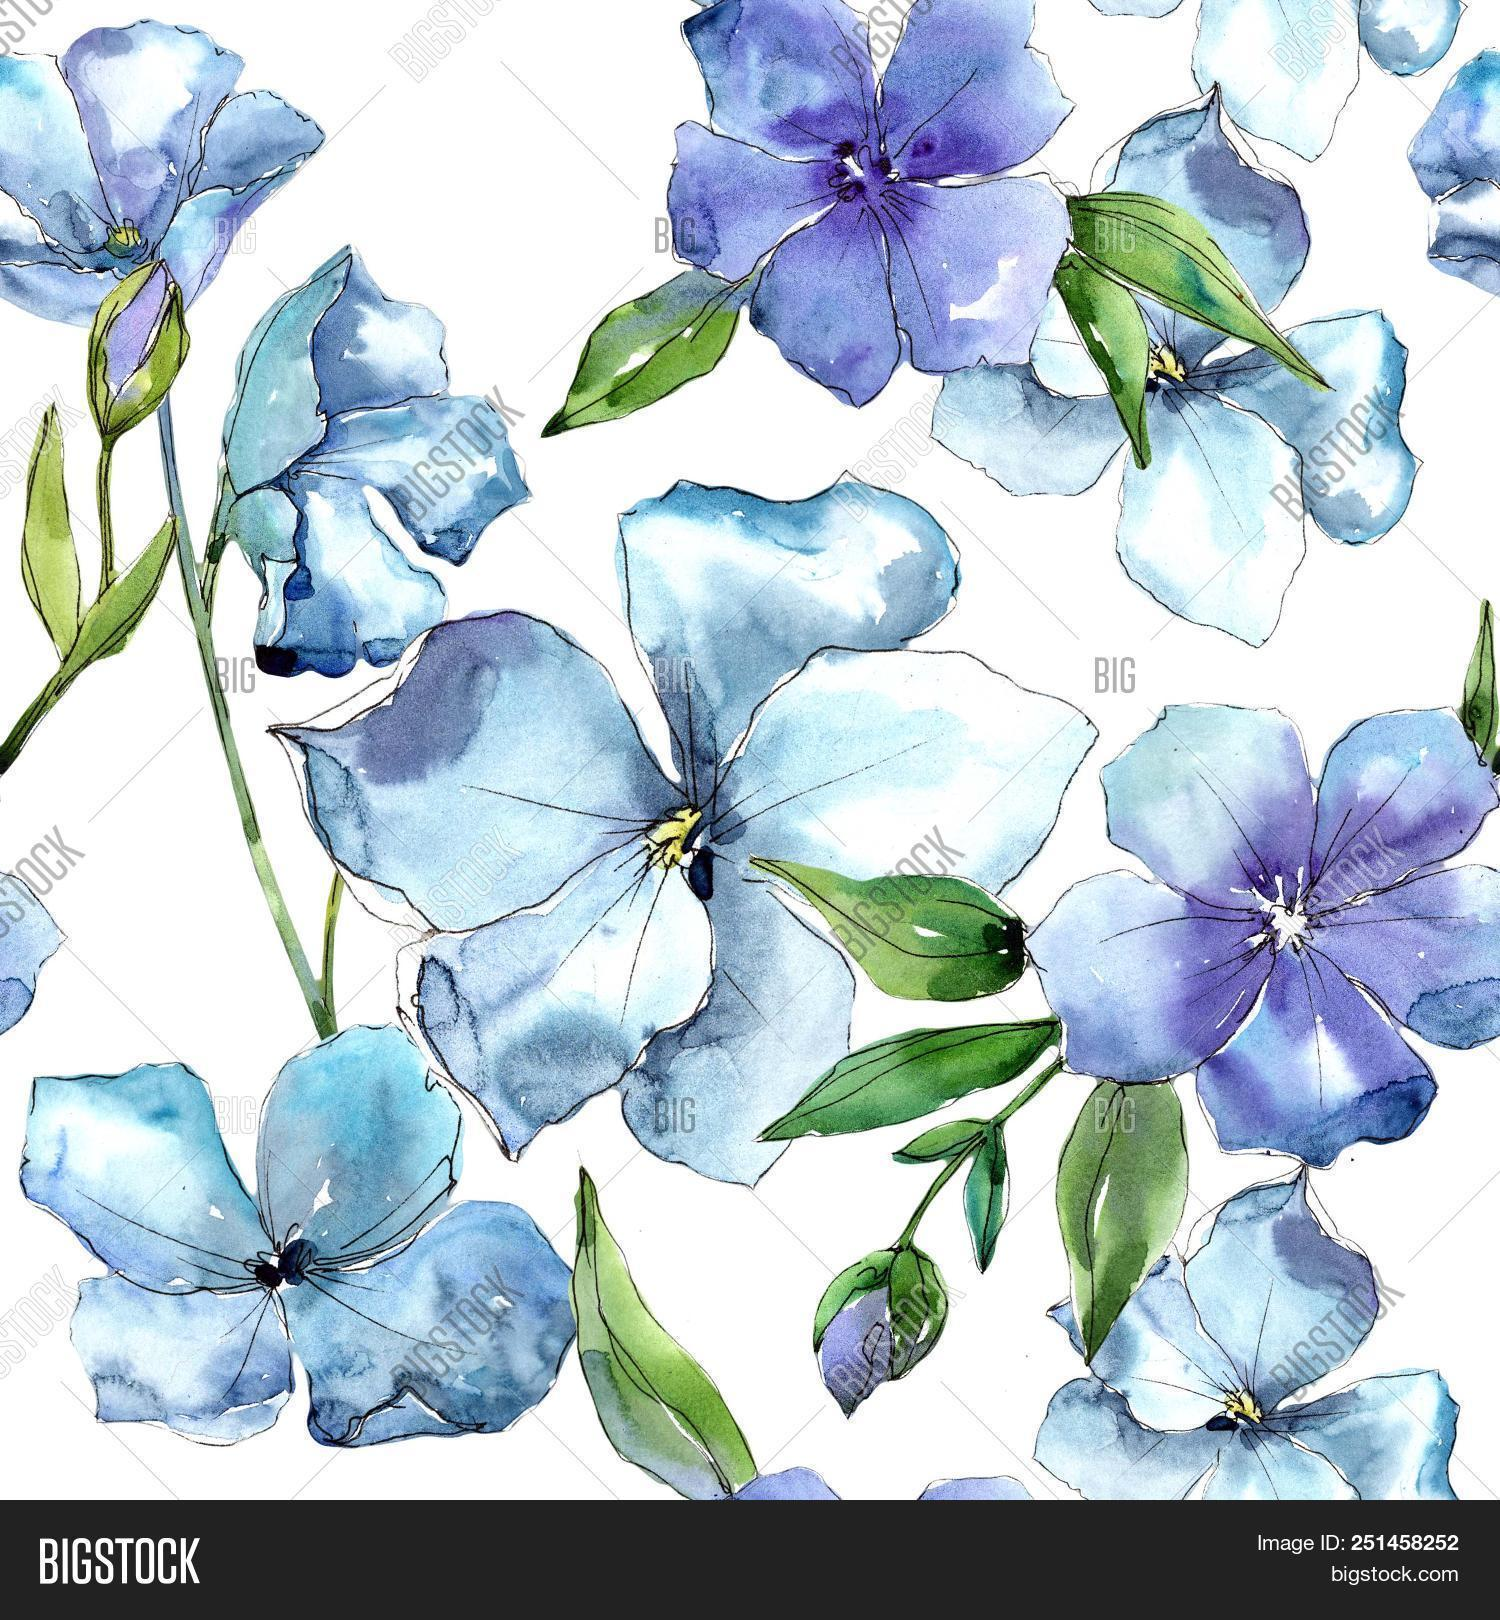 Watercolor Blue Flax Image Photo Free Trial Bigstock